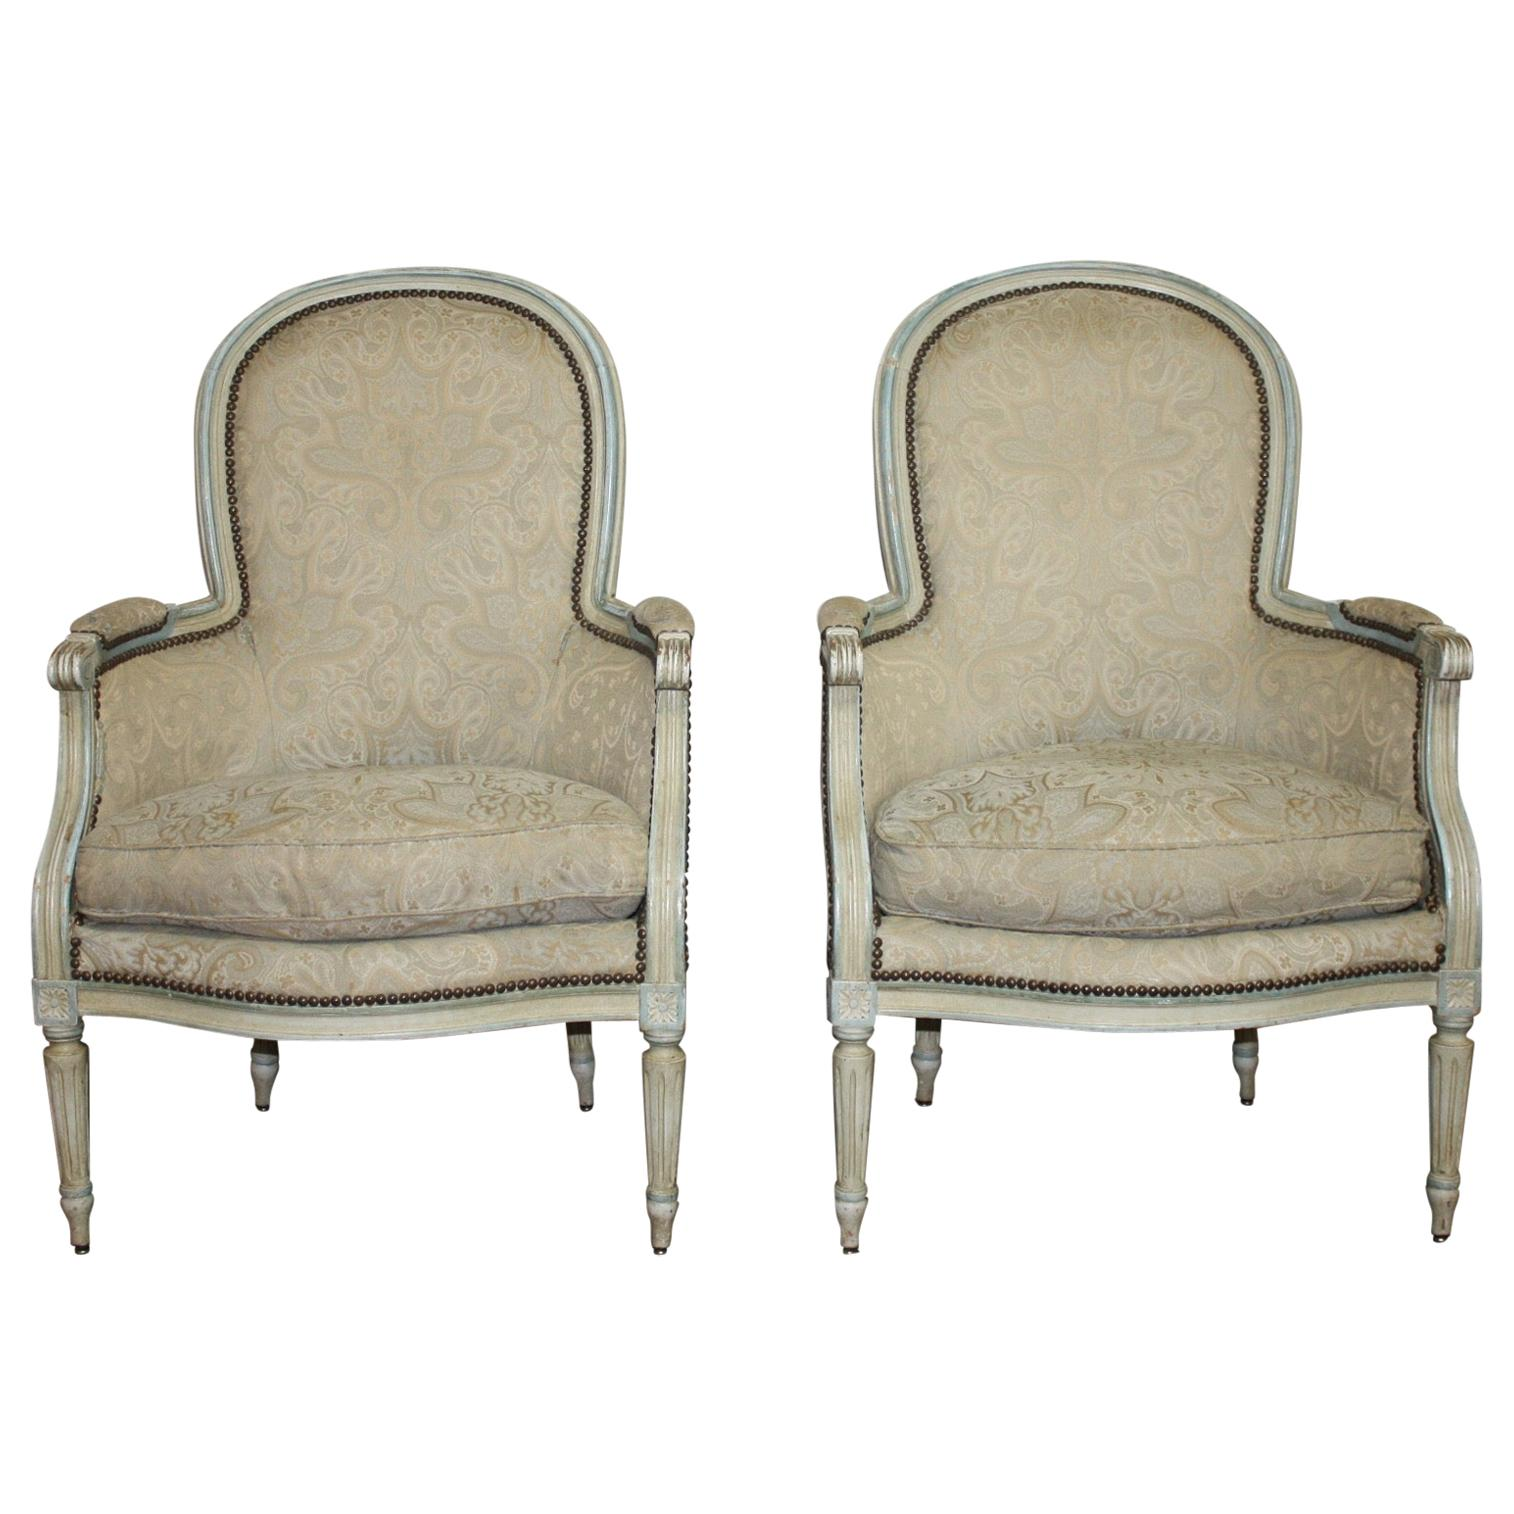 French 19th Century Louis XVI Bergère Chairs